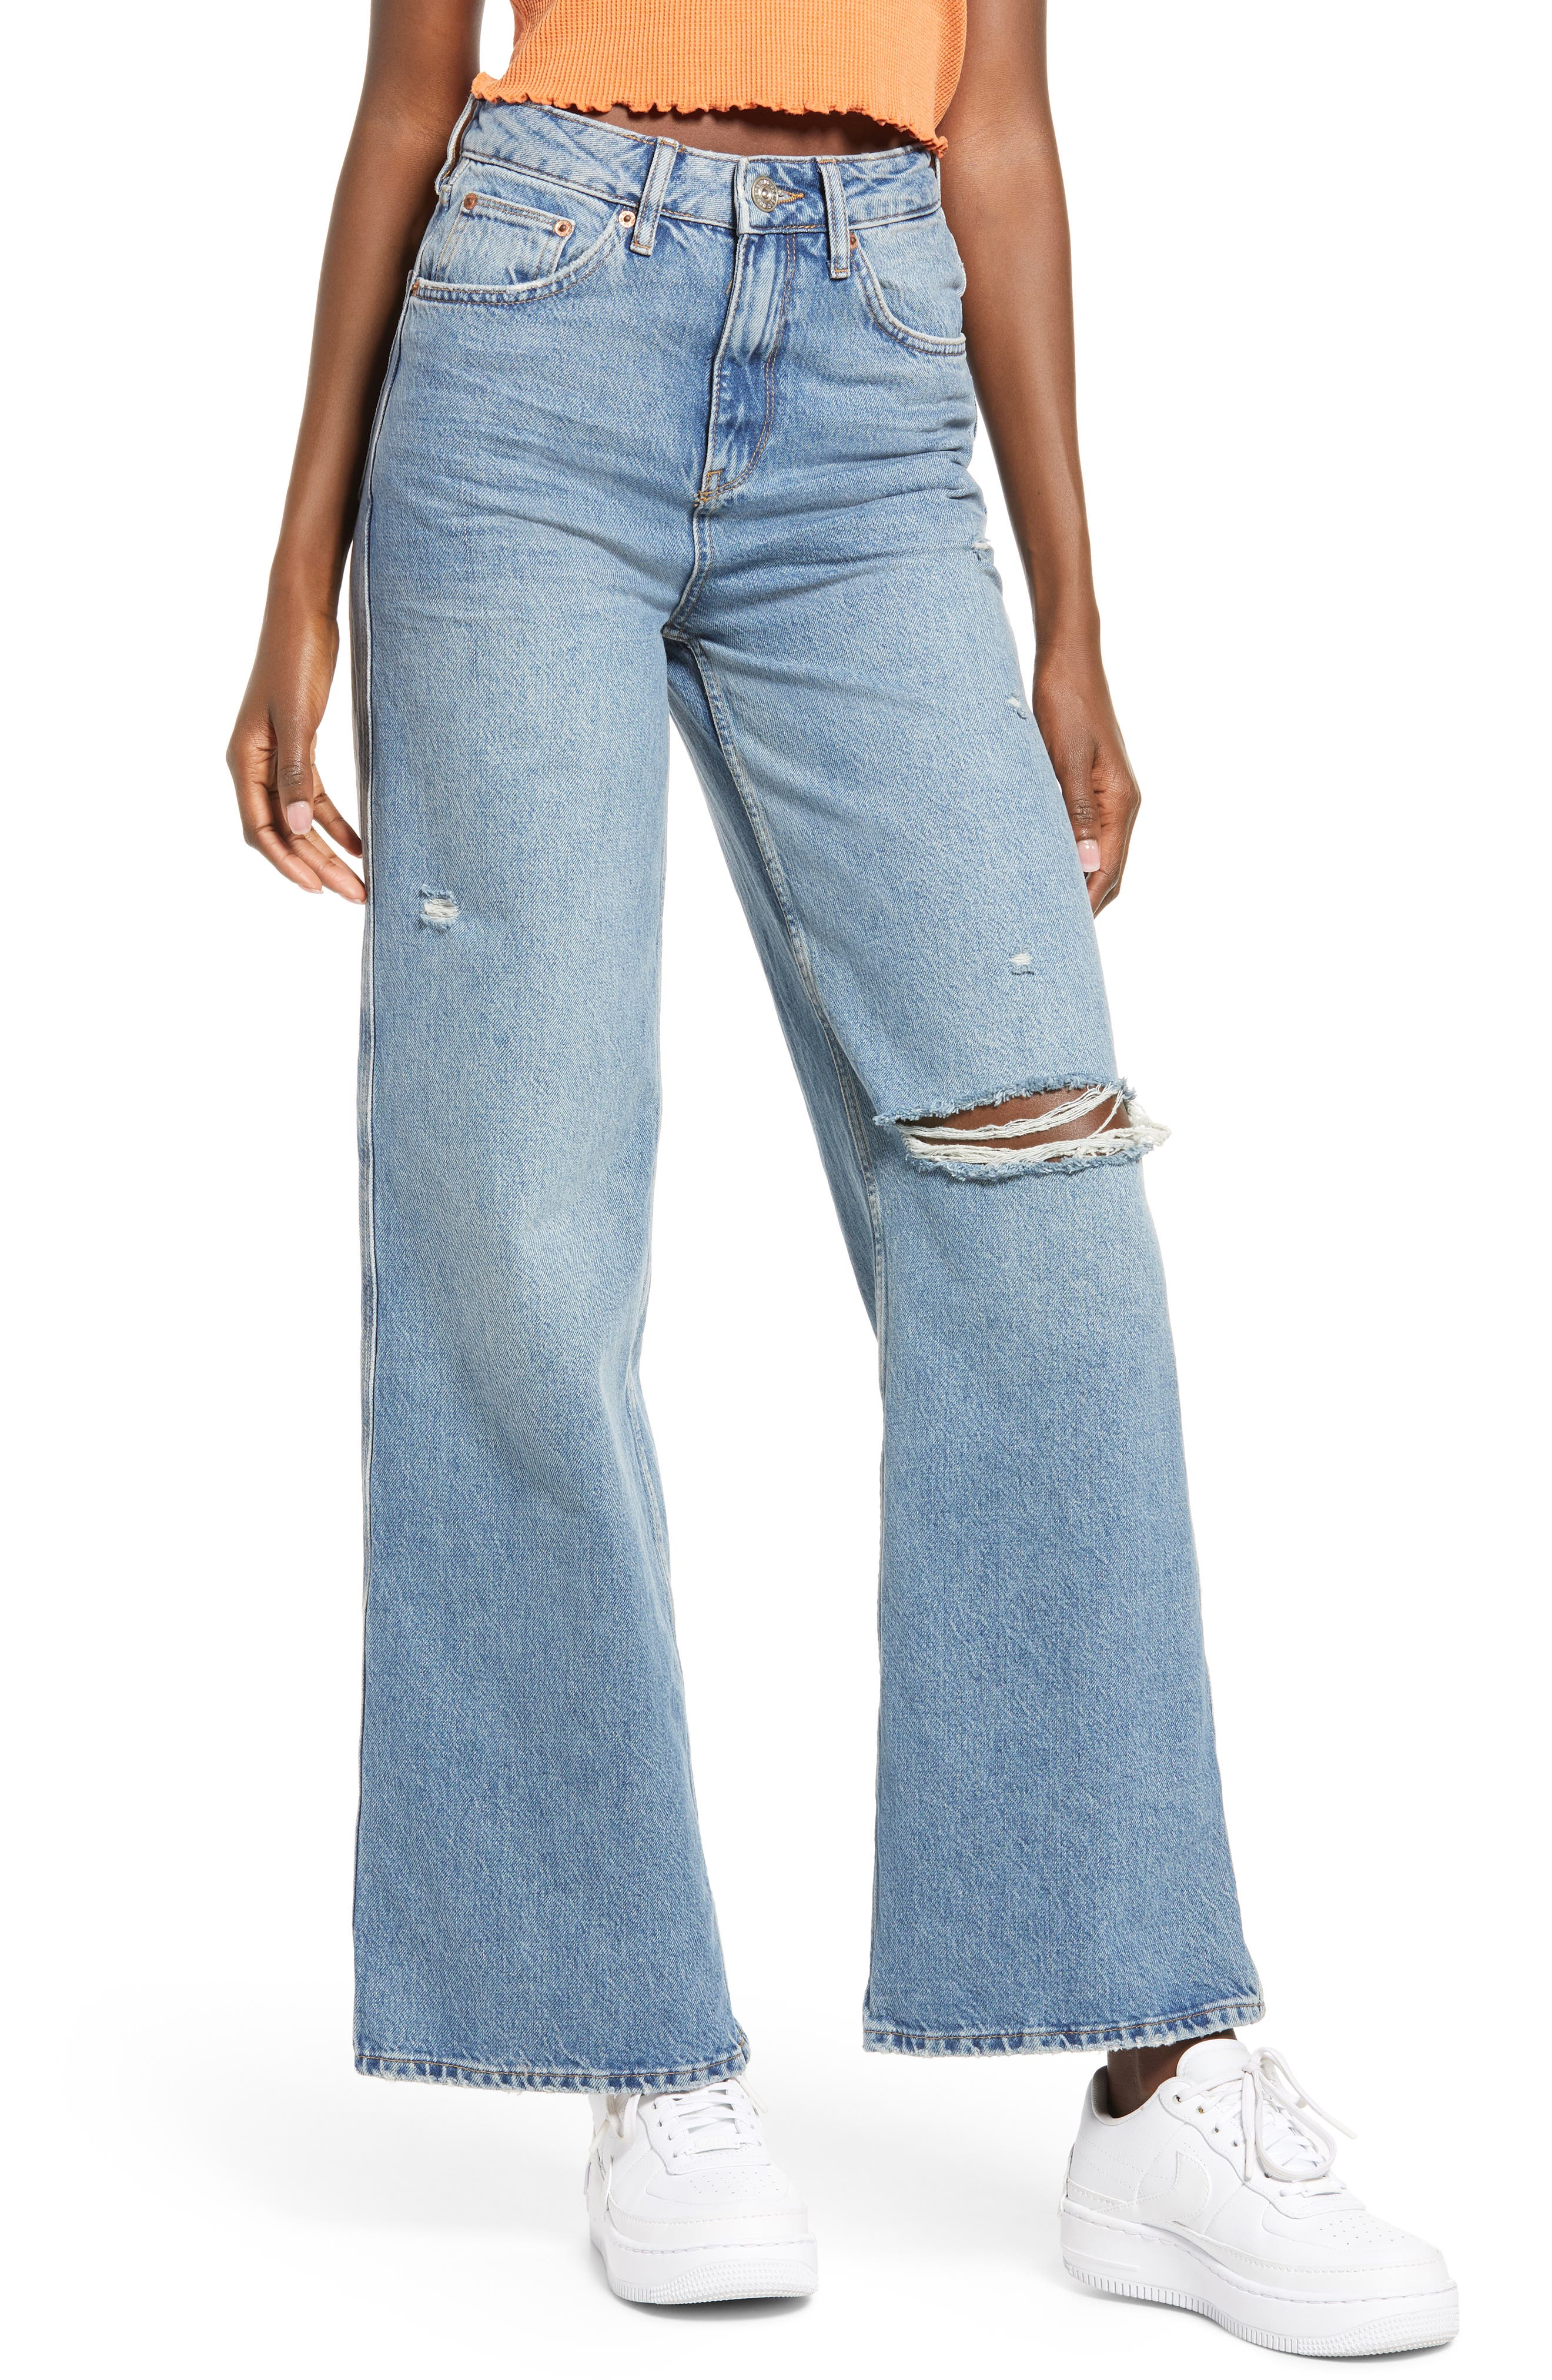 Ripped Super High Waist Puddle Jeans